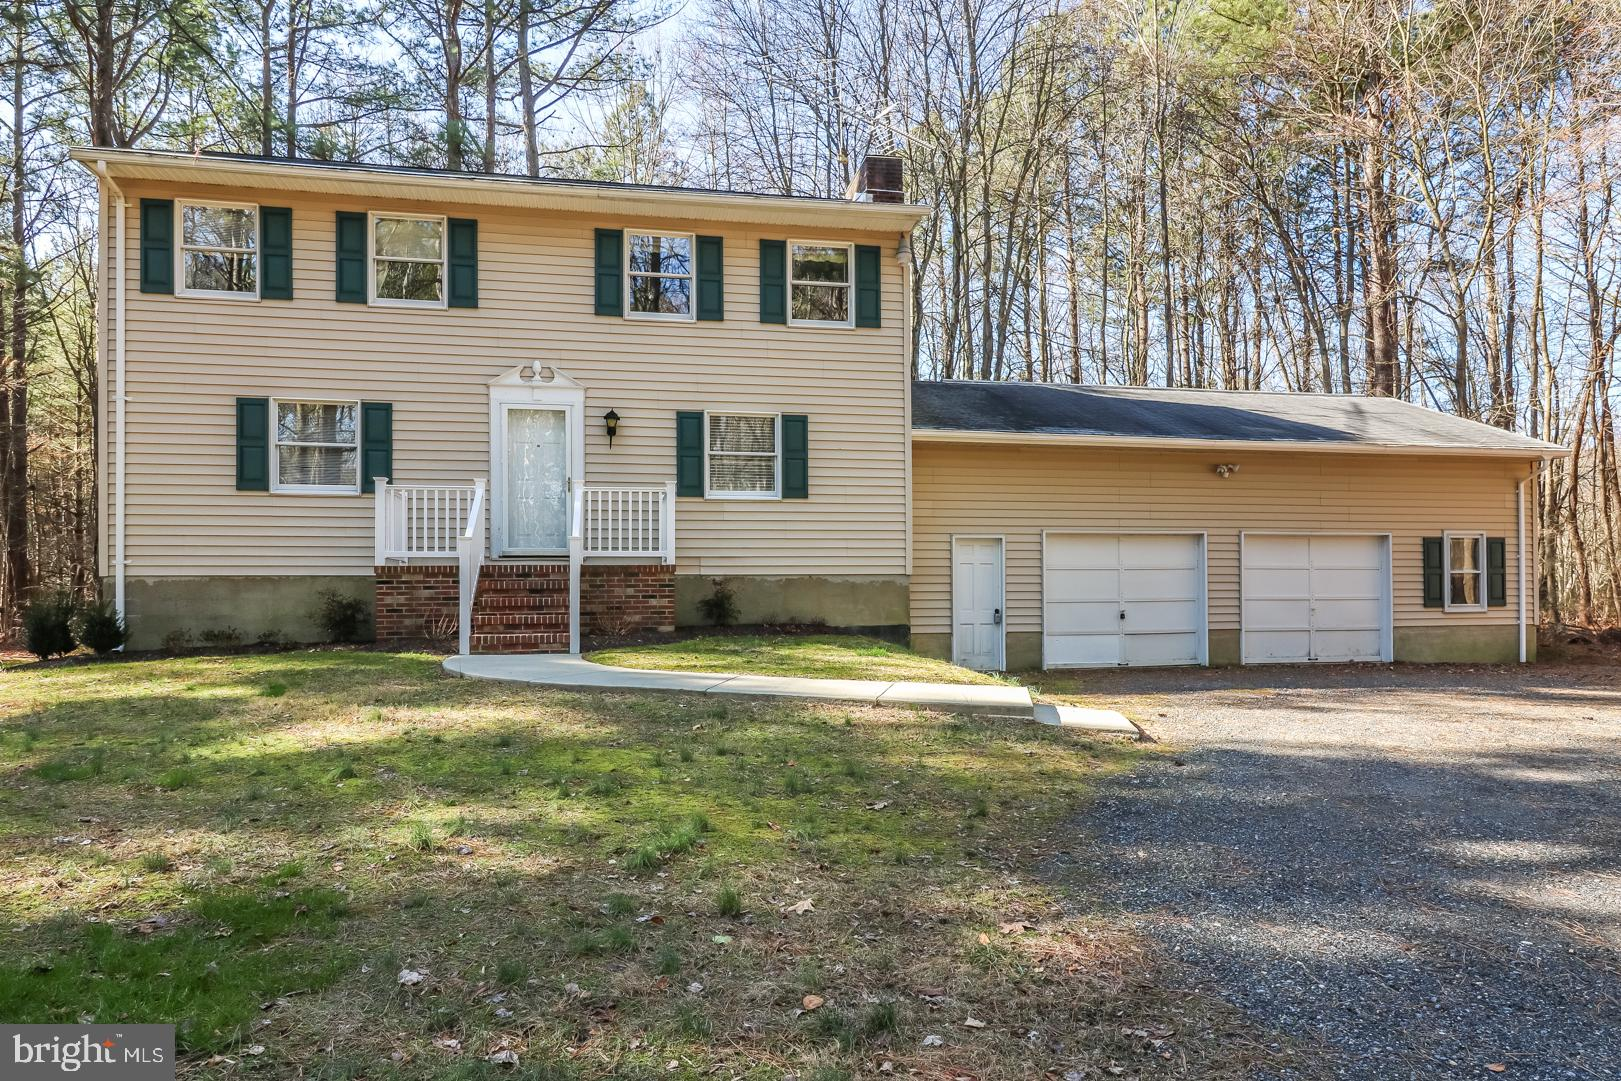 127 SYCAMORE LANE, QUEEN ANNE, MD 21657